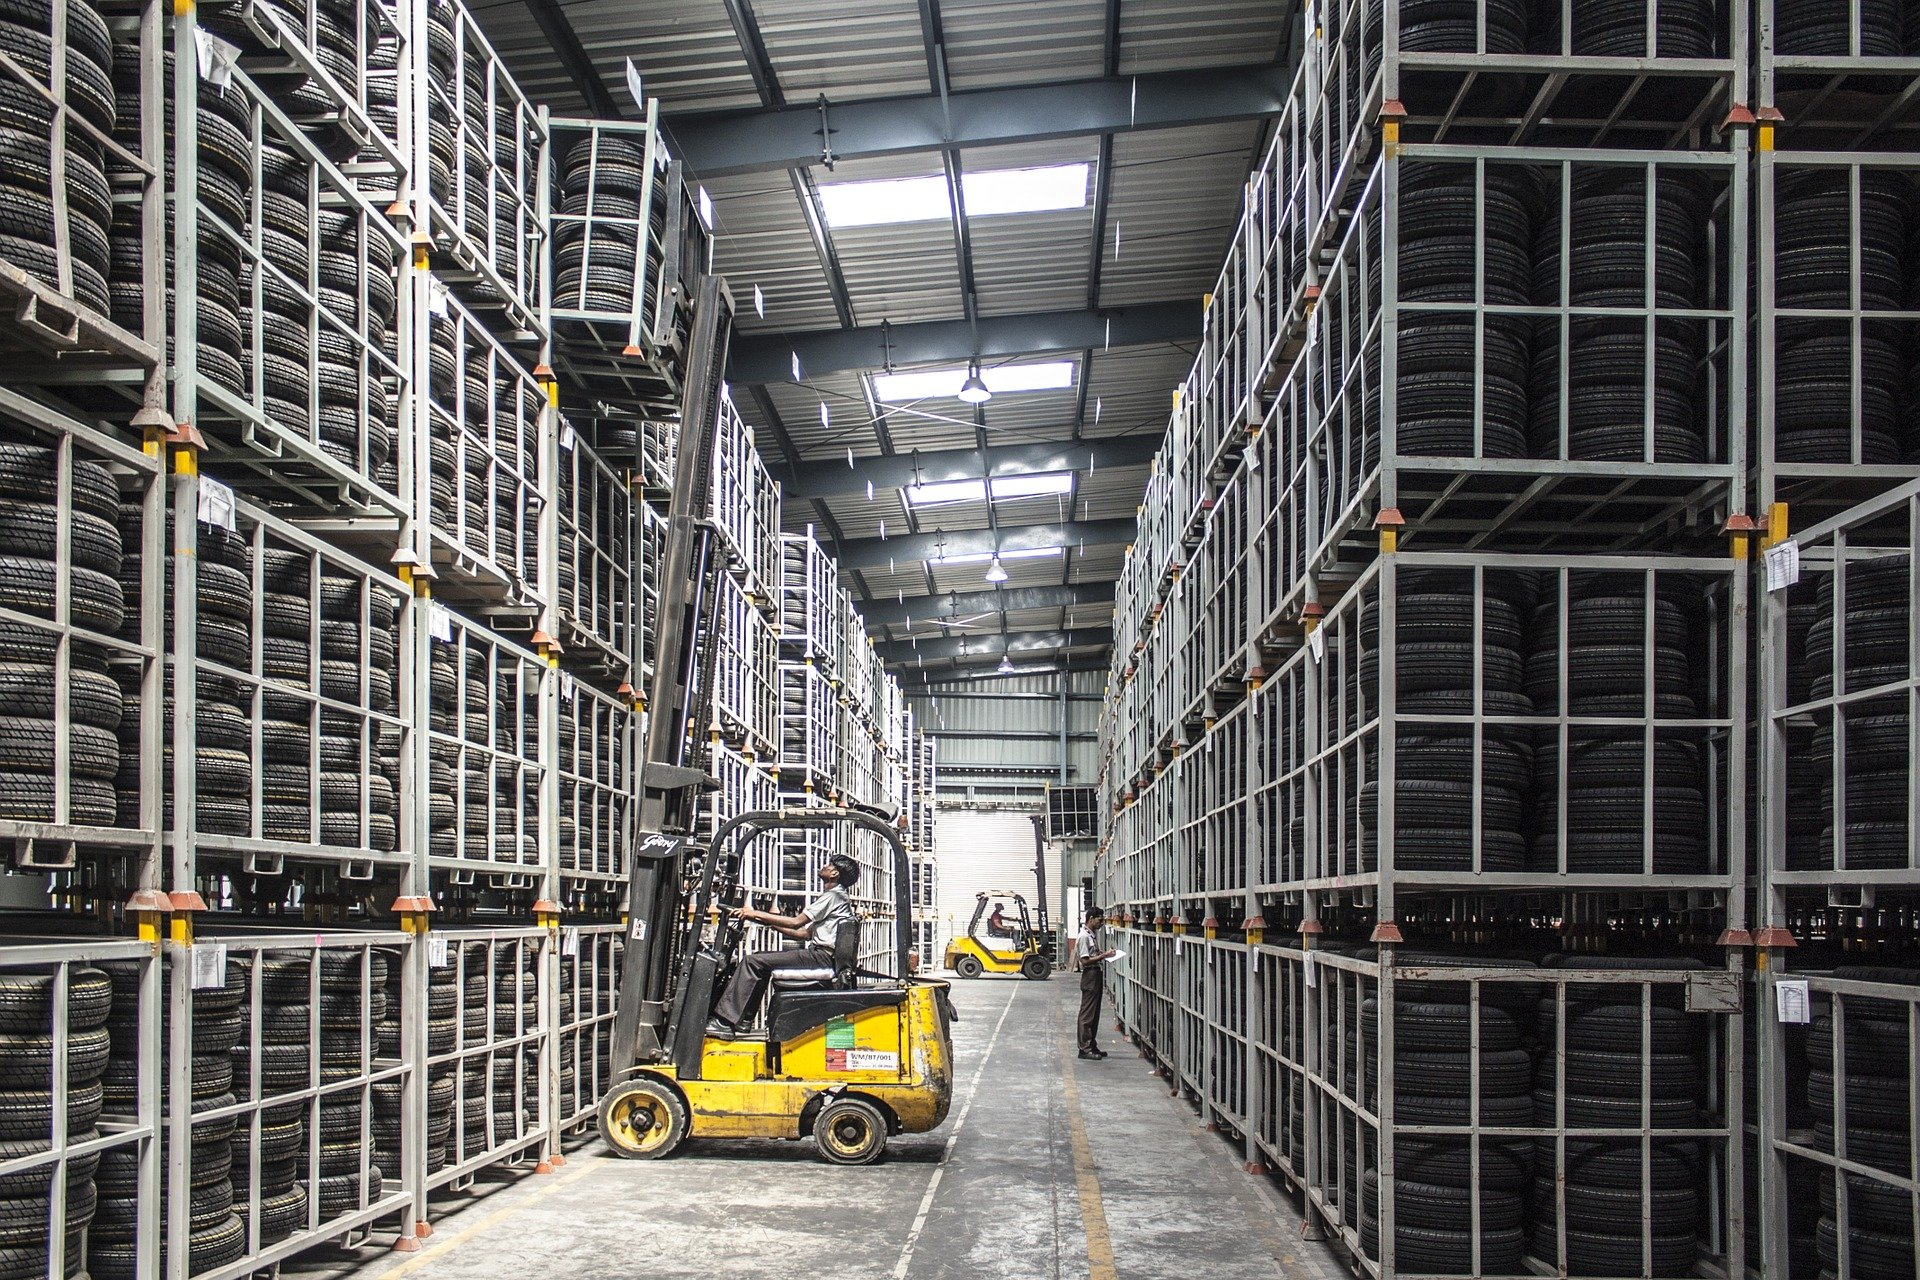 Forklift truck lifting a cage at full reach